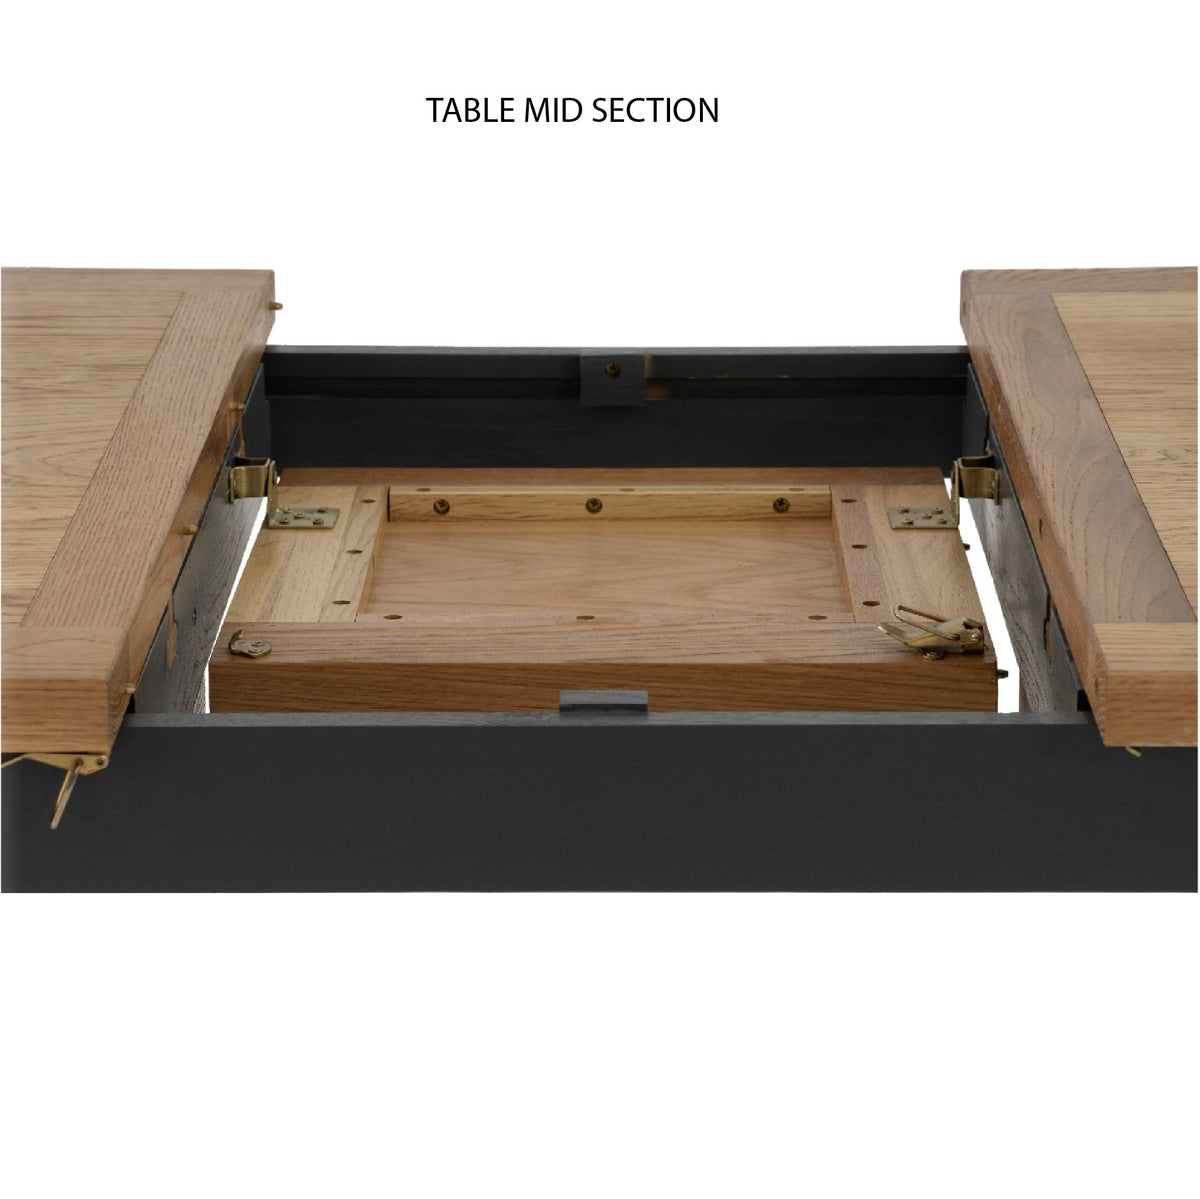 Charlestown Black Extendable Dining Table - Straight on View of Mid Section of Table